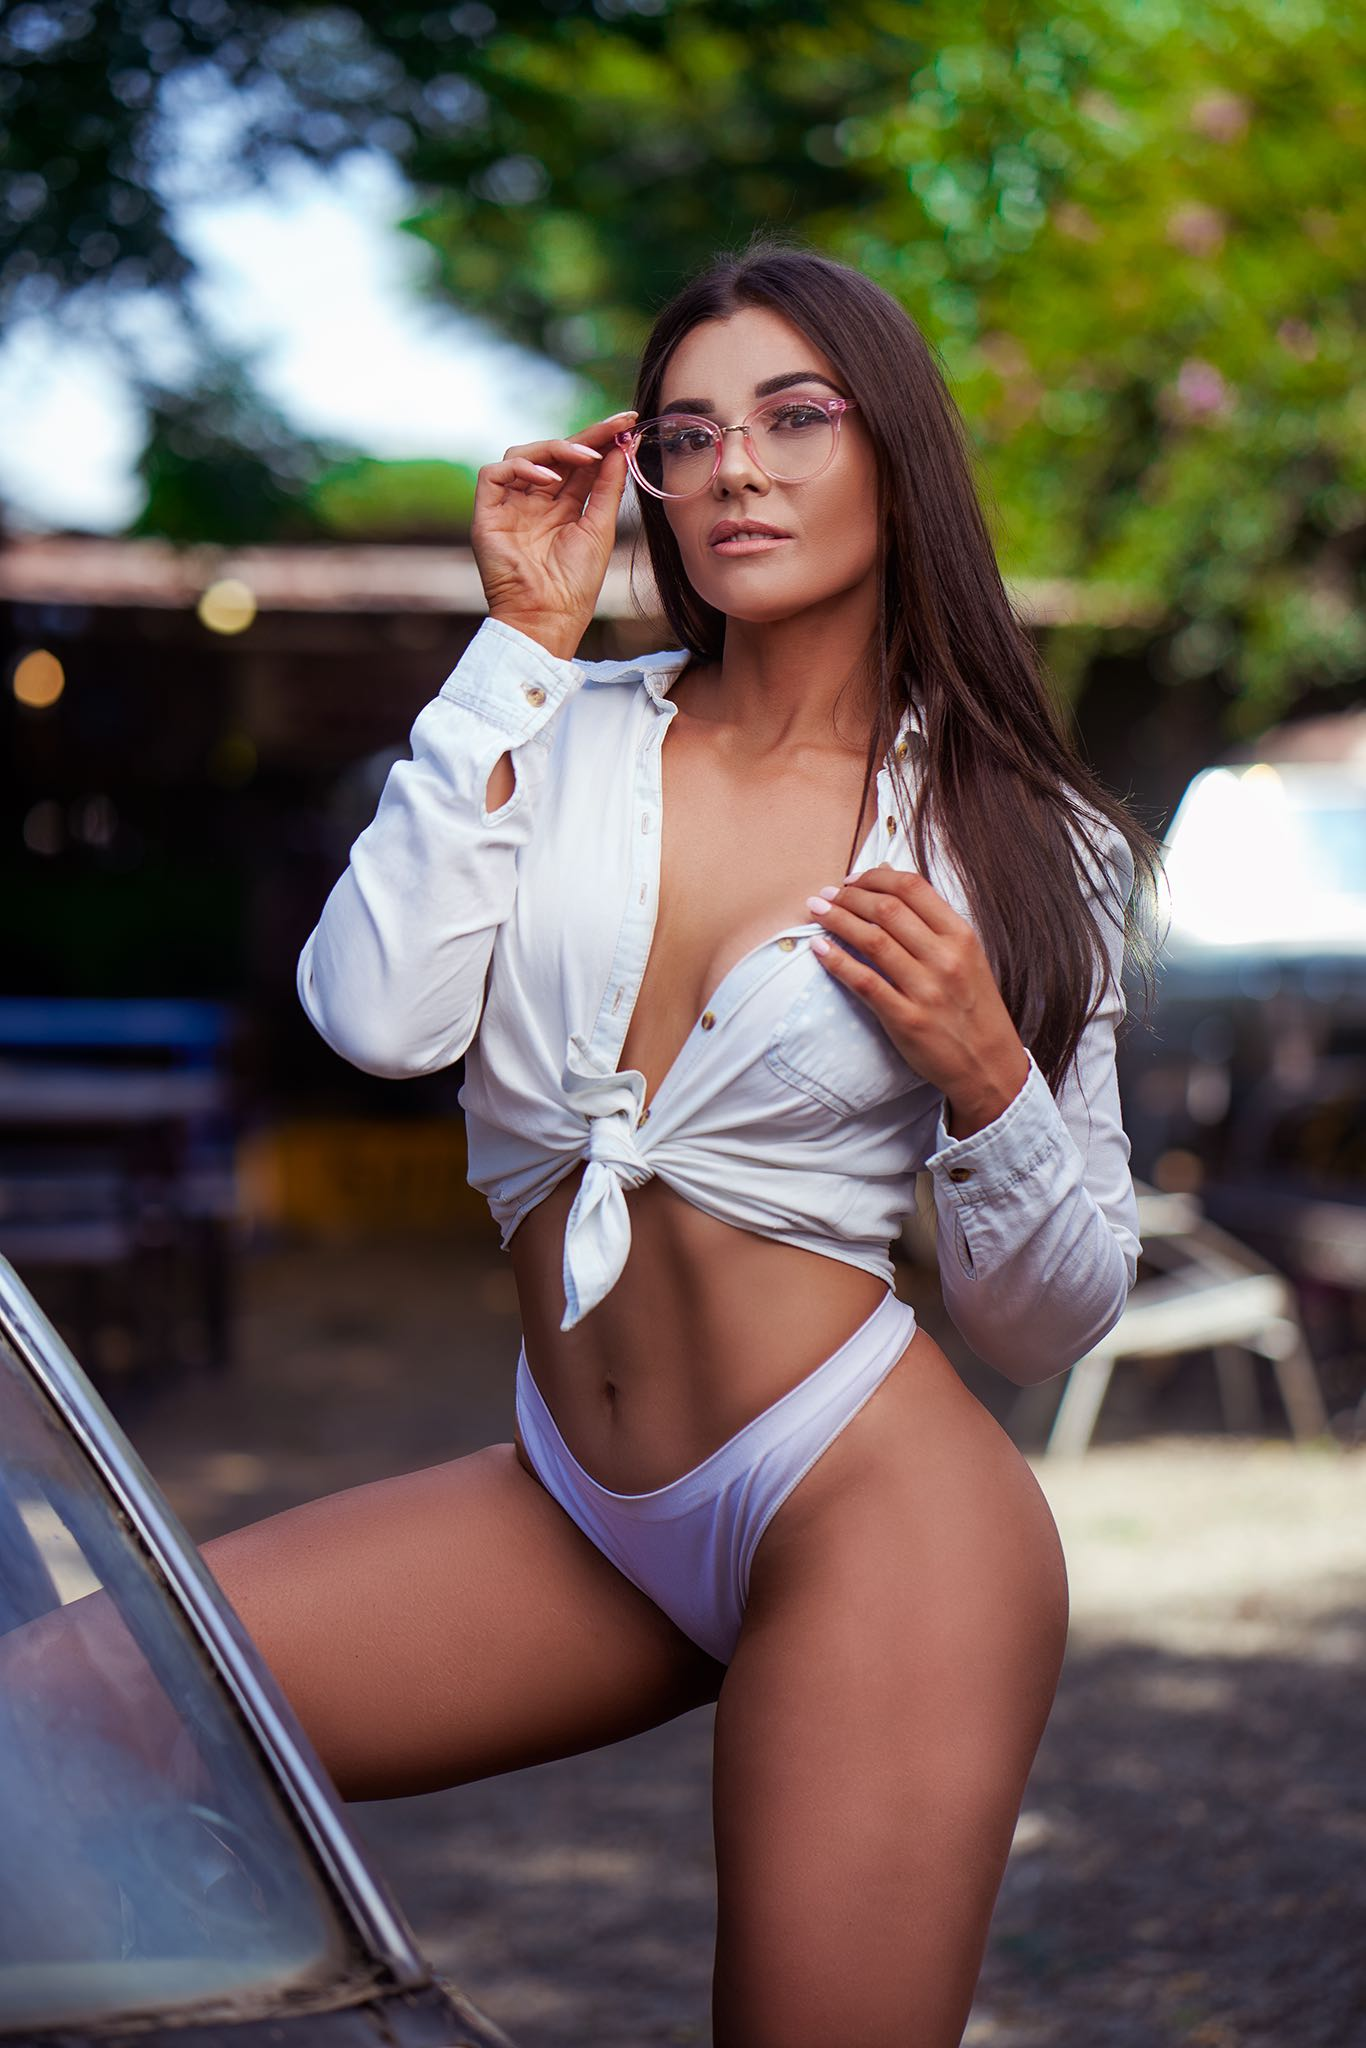 Our South African Girls feature with Yvette Ferreira